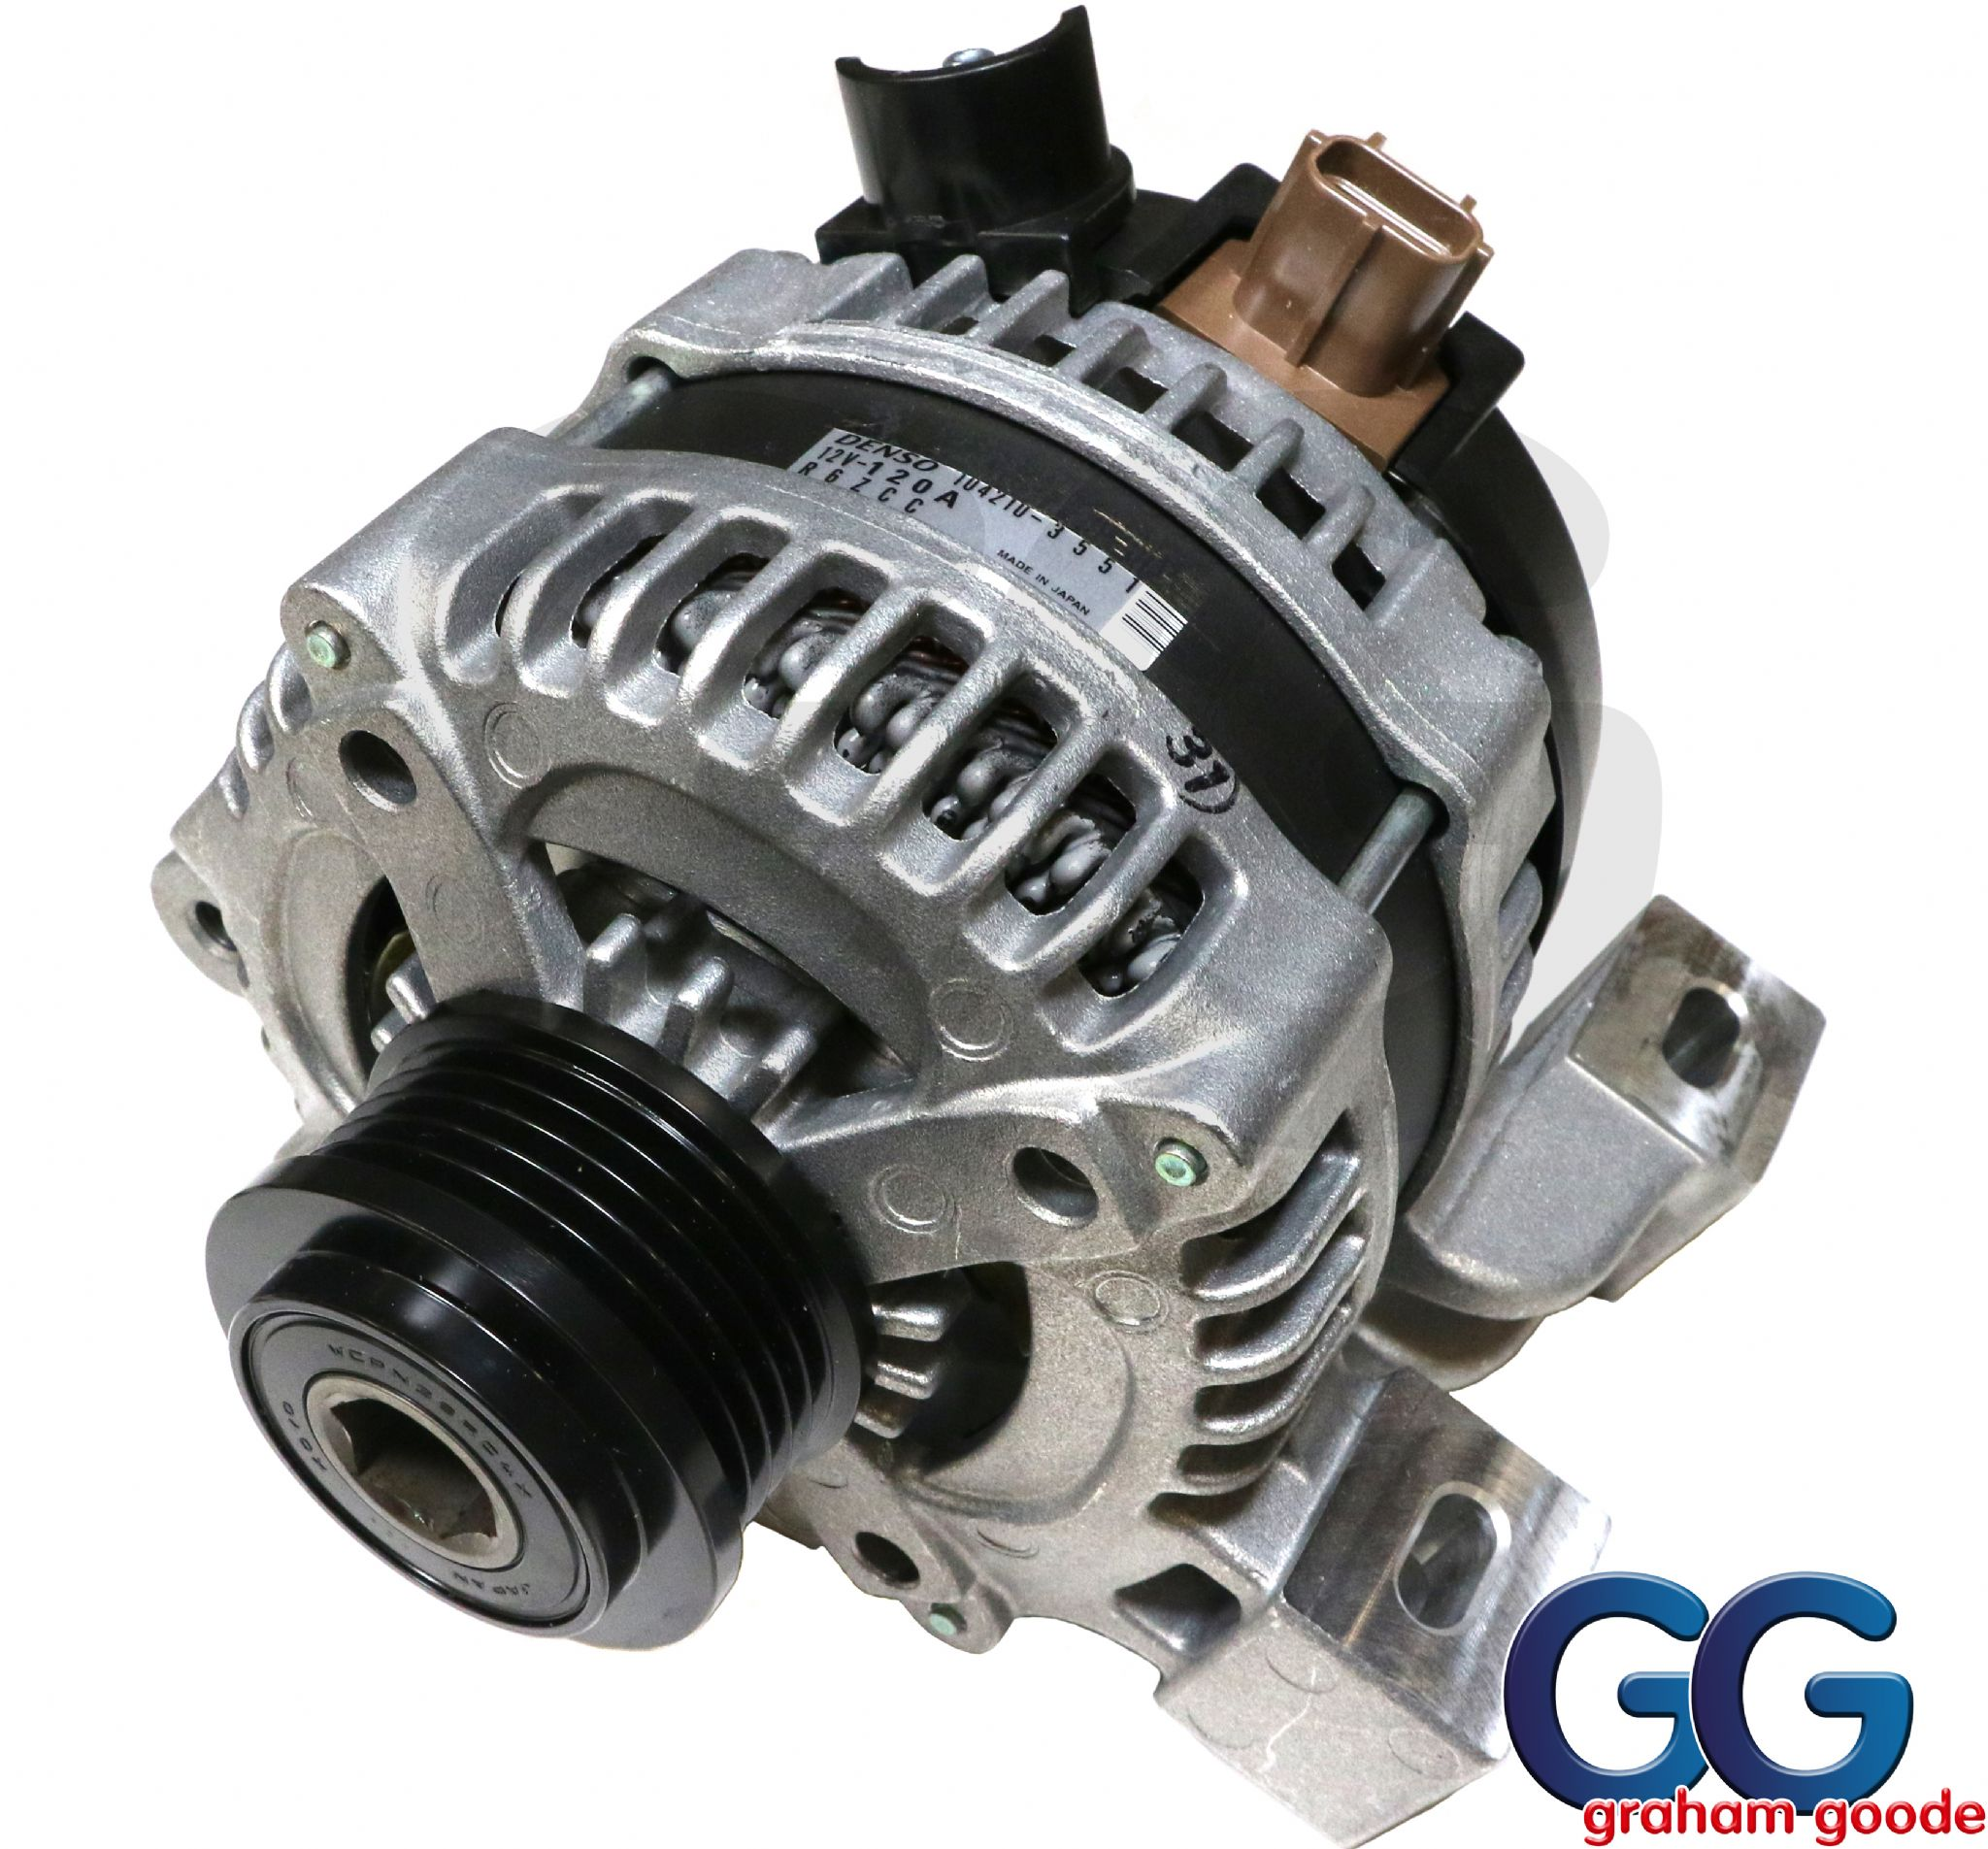 Replacement Oe Spec Alternator Ford Focus St 225 Xr5 Mk2